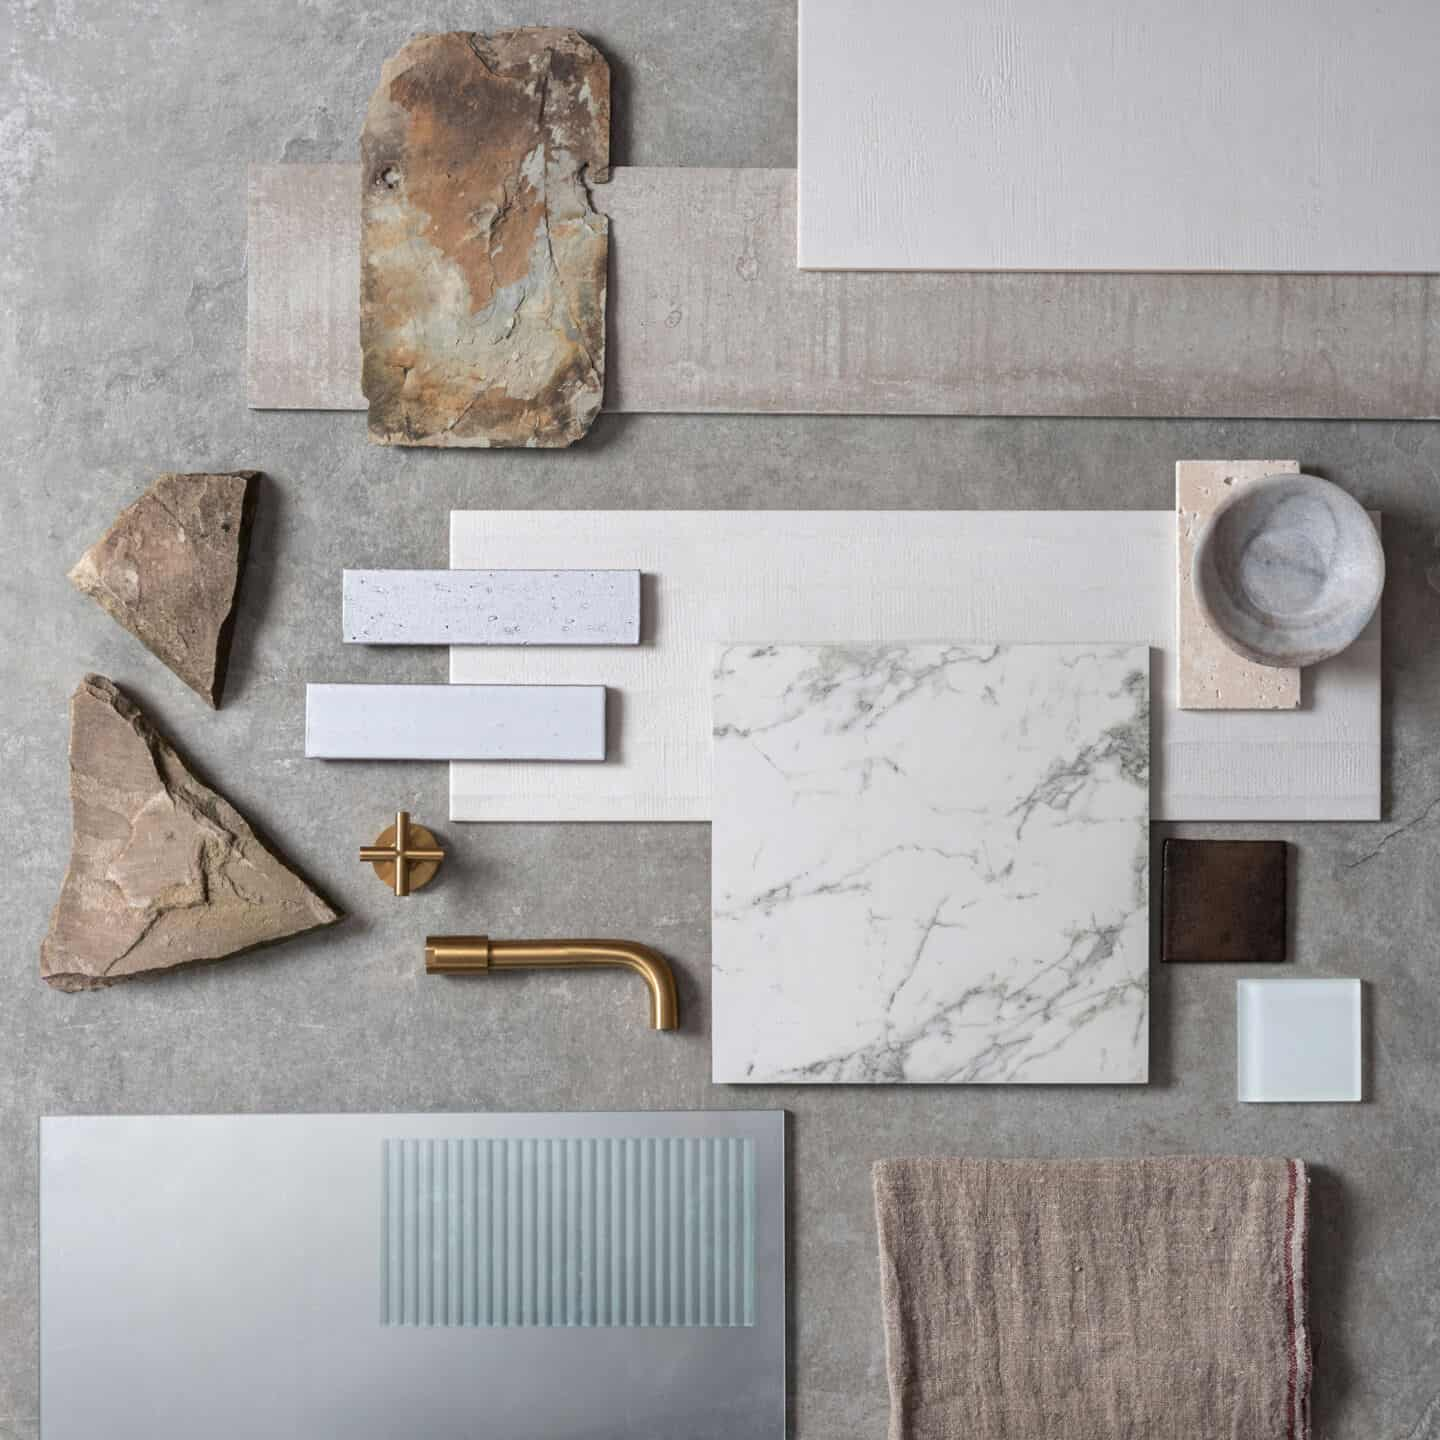 Texture Play Mood Board created by Original Style and featuring textured materials and tiles to show how to use texture in the bathroom